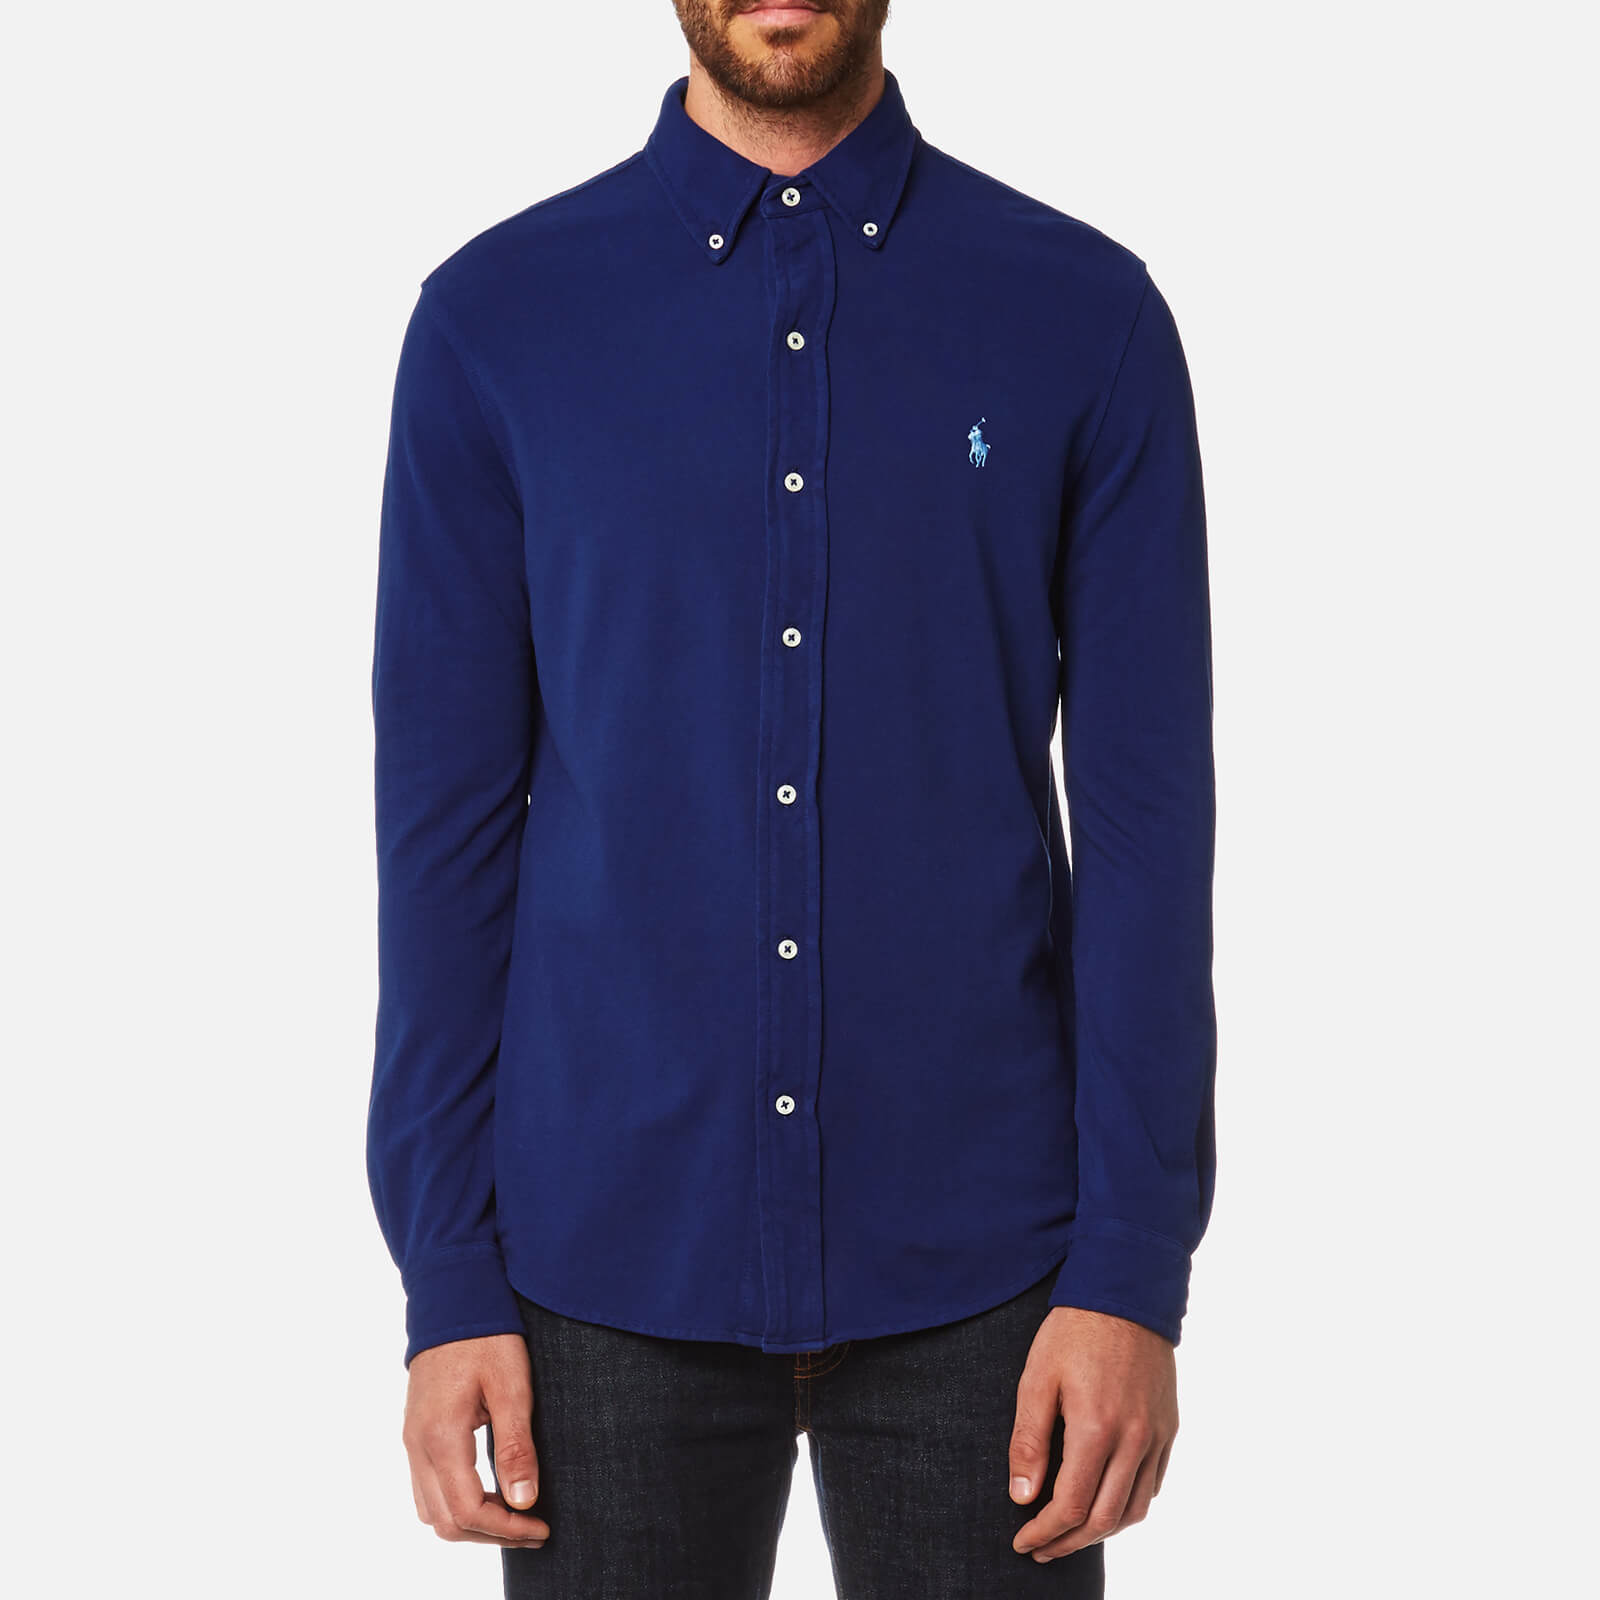 43a11b1b Polo Ralph Lauren Men's Featherweight Mesh Shirt - Navy - Free UK Delivery  over £50